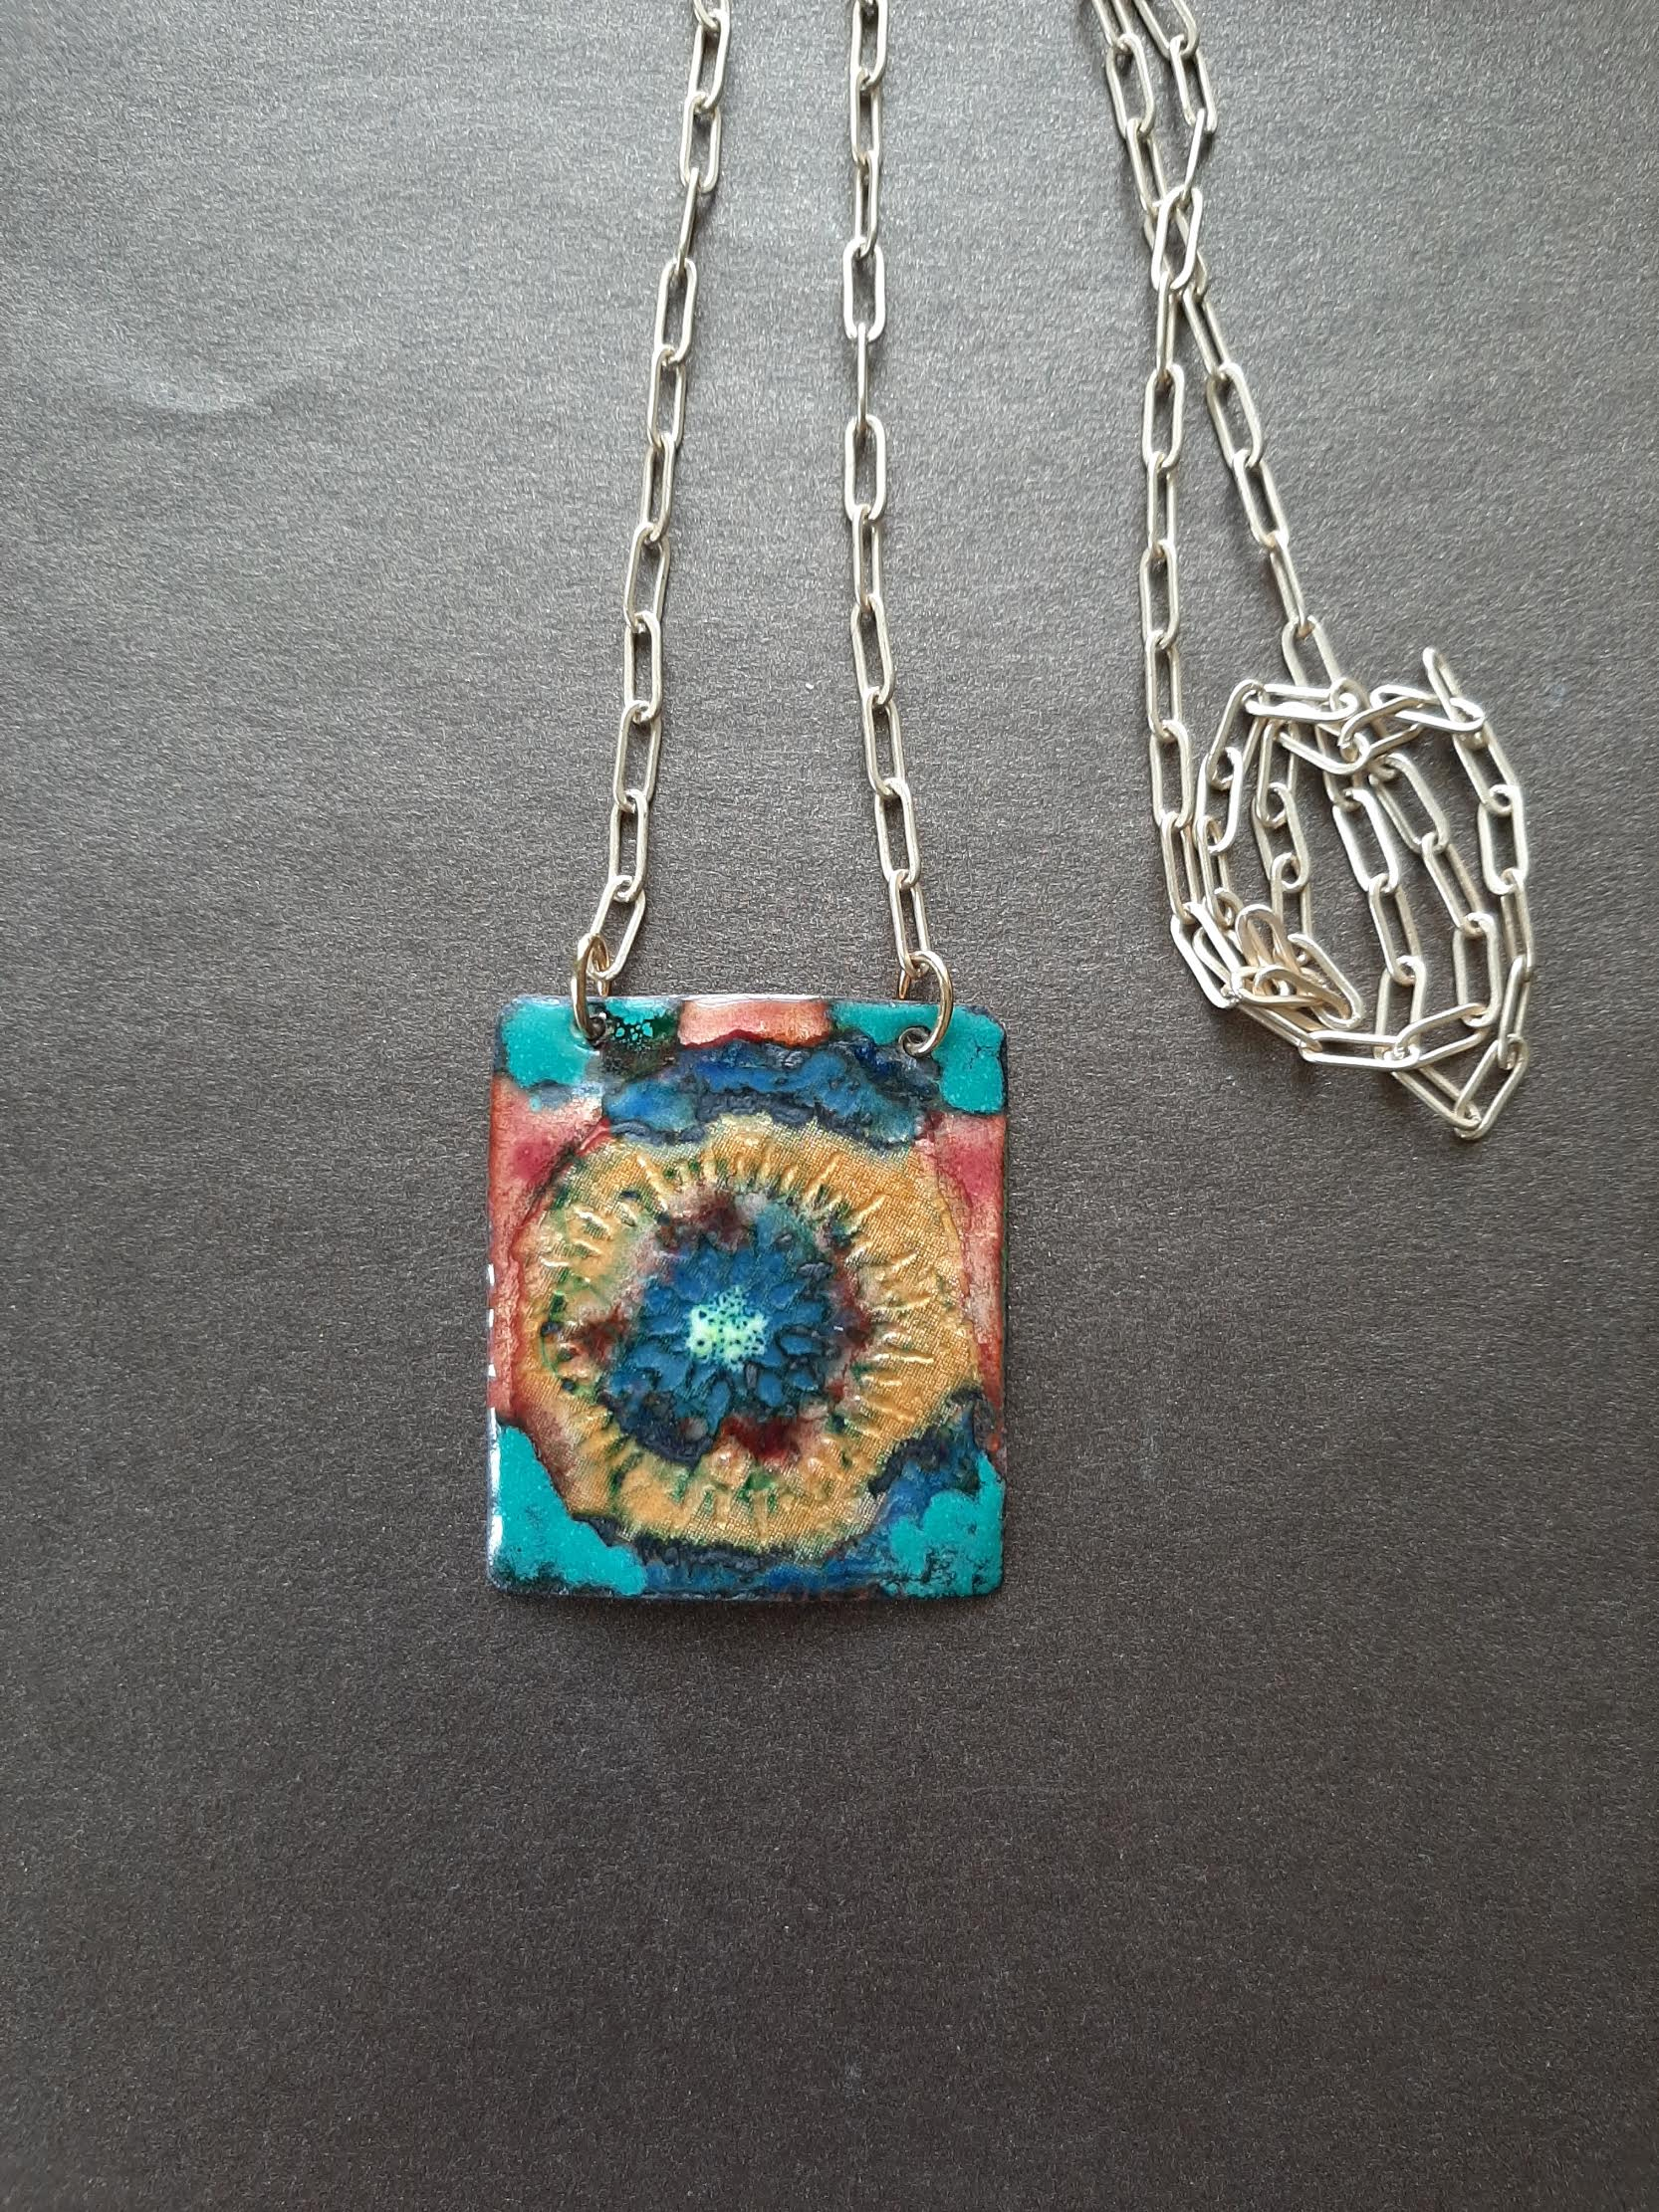 Square Necklace, Basse-taille with Gold Filled Chain